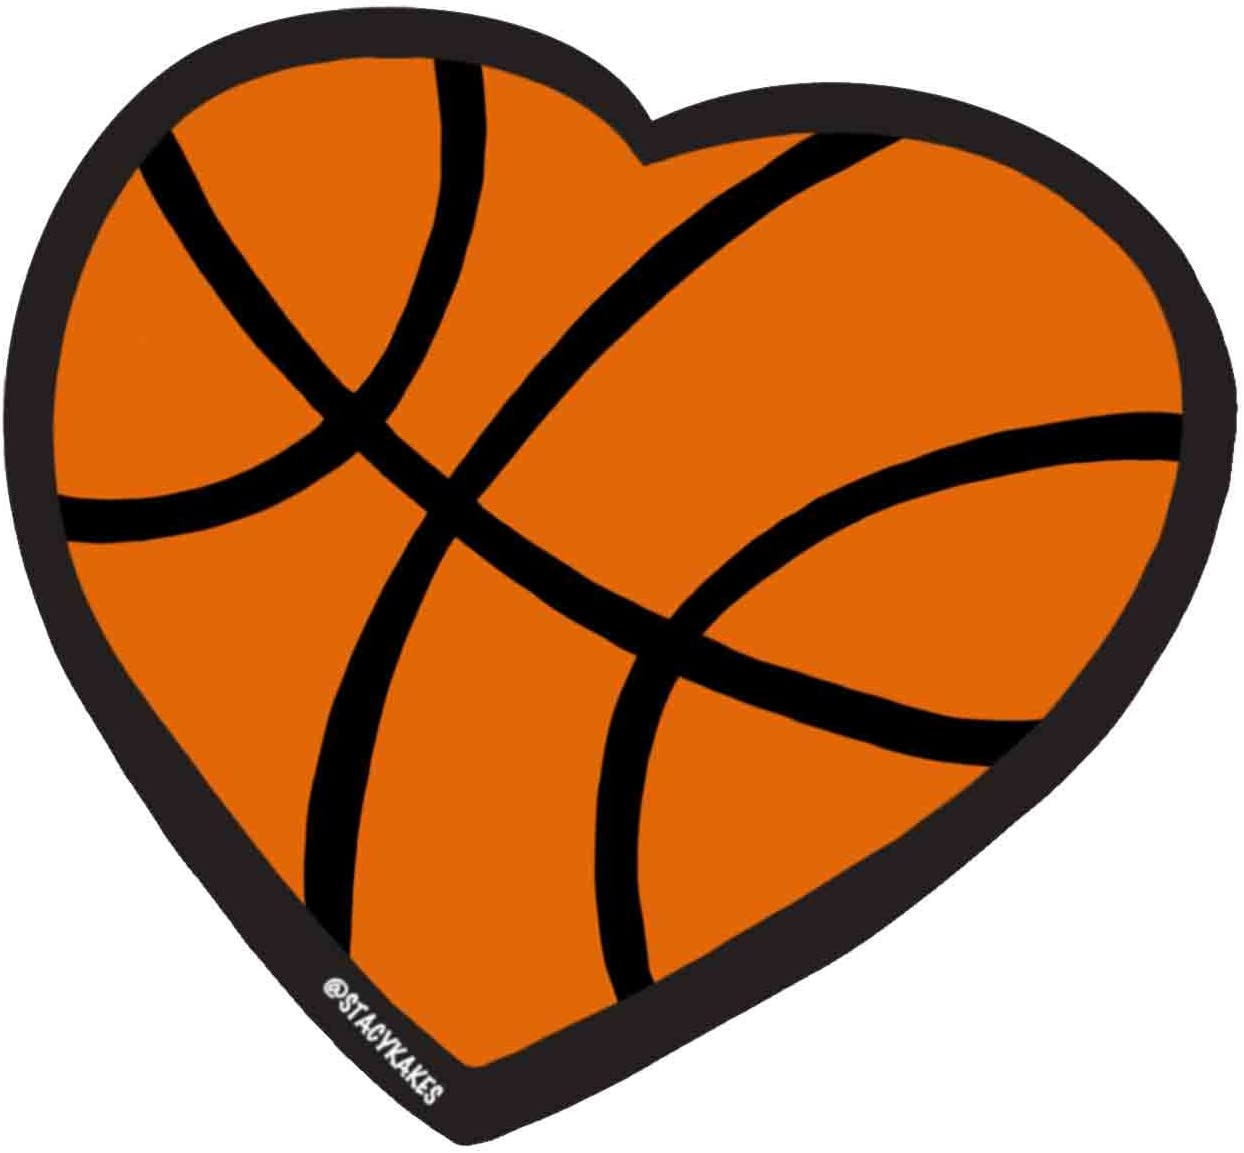 Basketball Heart Decal - for Cars, Laptops, and More! - Use Inside or Outside - Sicks to Any Flat Smooth Surface